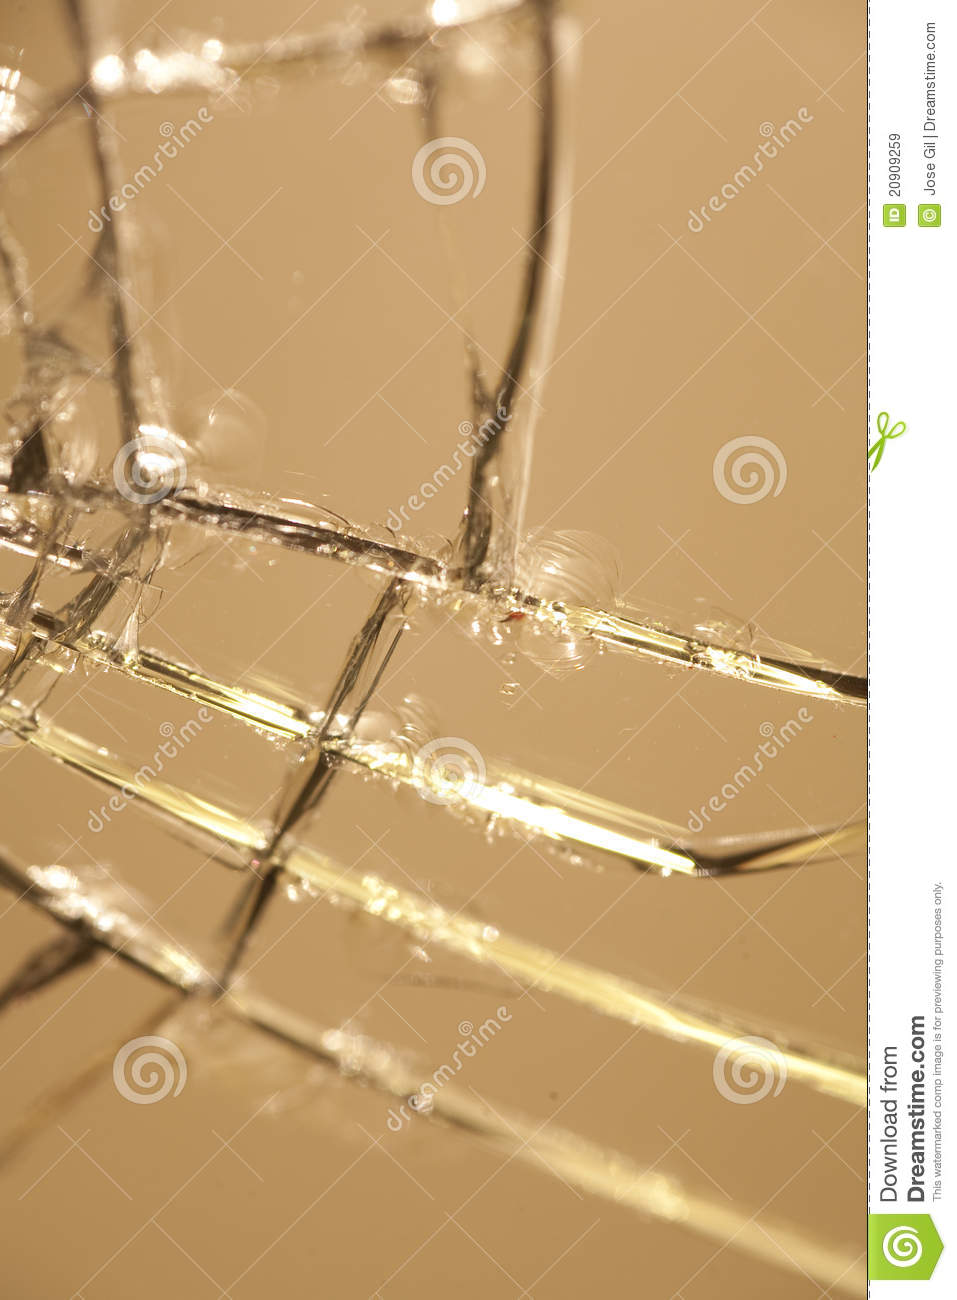 Cracked Mirror Stock Image Image Of Mirror Luck